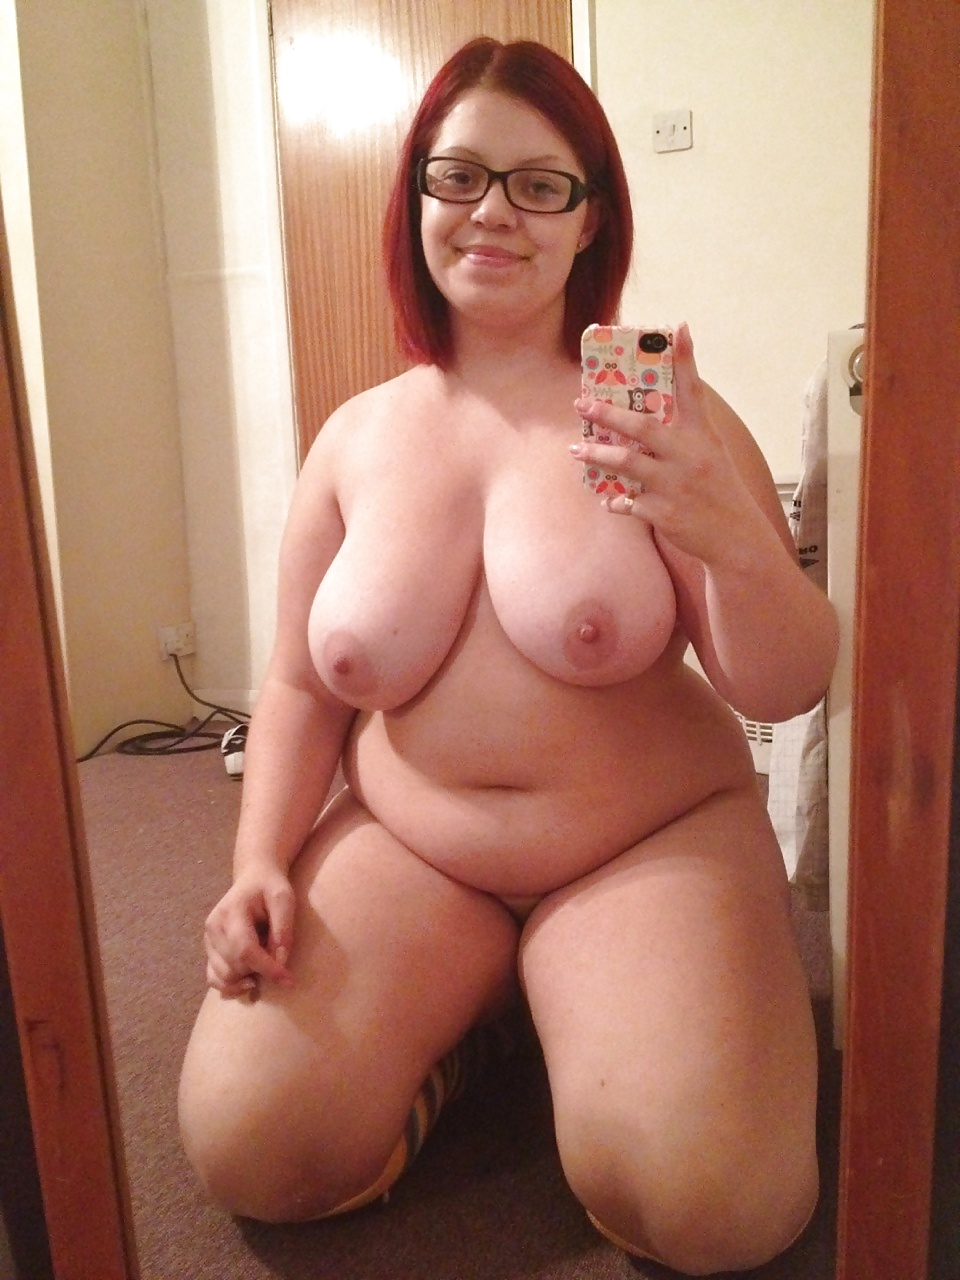 Fat nude women glasses, pictures of sexy boobs